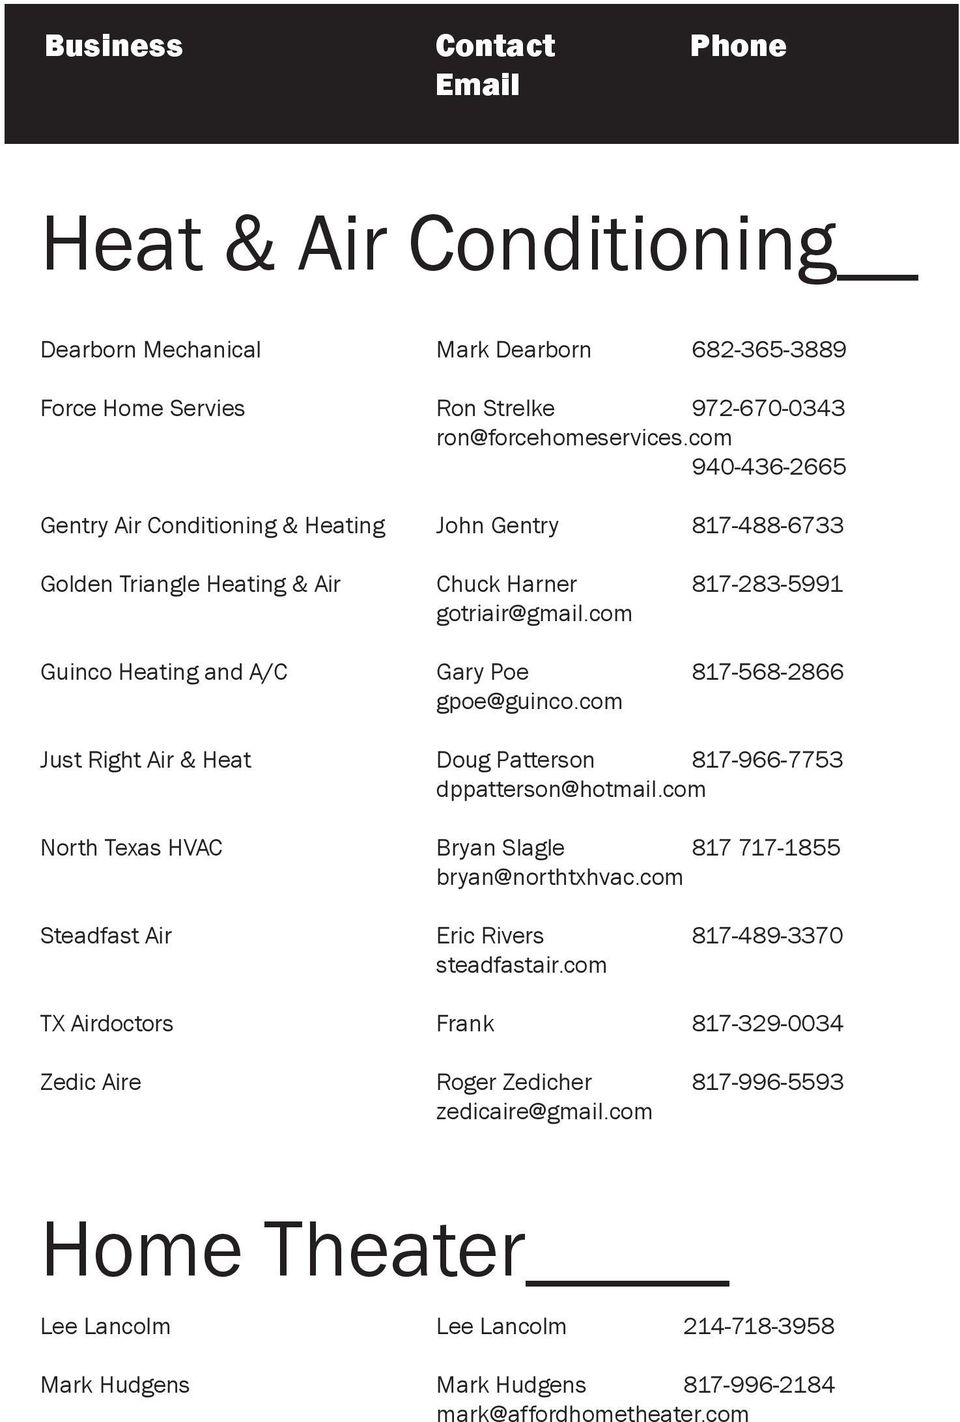 com Guinco Heating and A/C Gary Poe 817-568-2866 gpoe@guinco.com Just Right Air & Heat Doug Patterson 817-966-7753 dppatterson@hotmail.